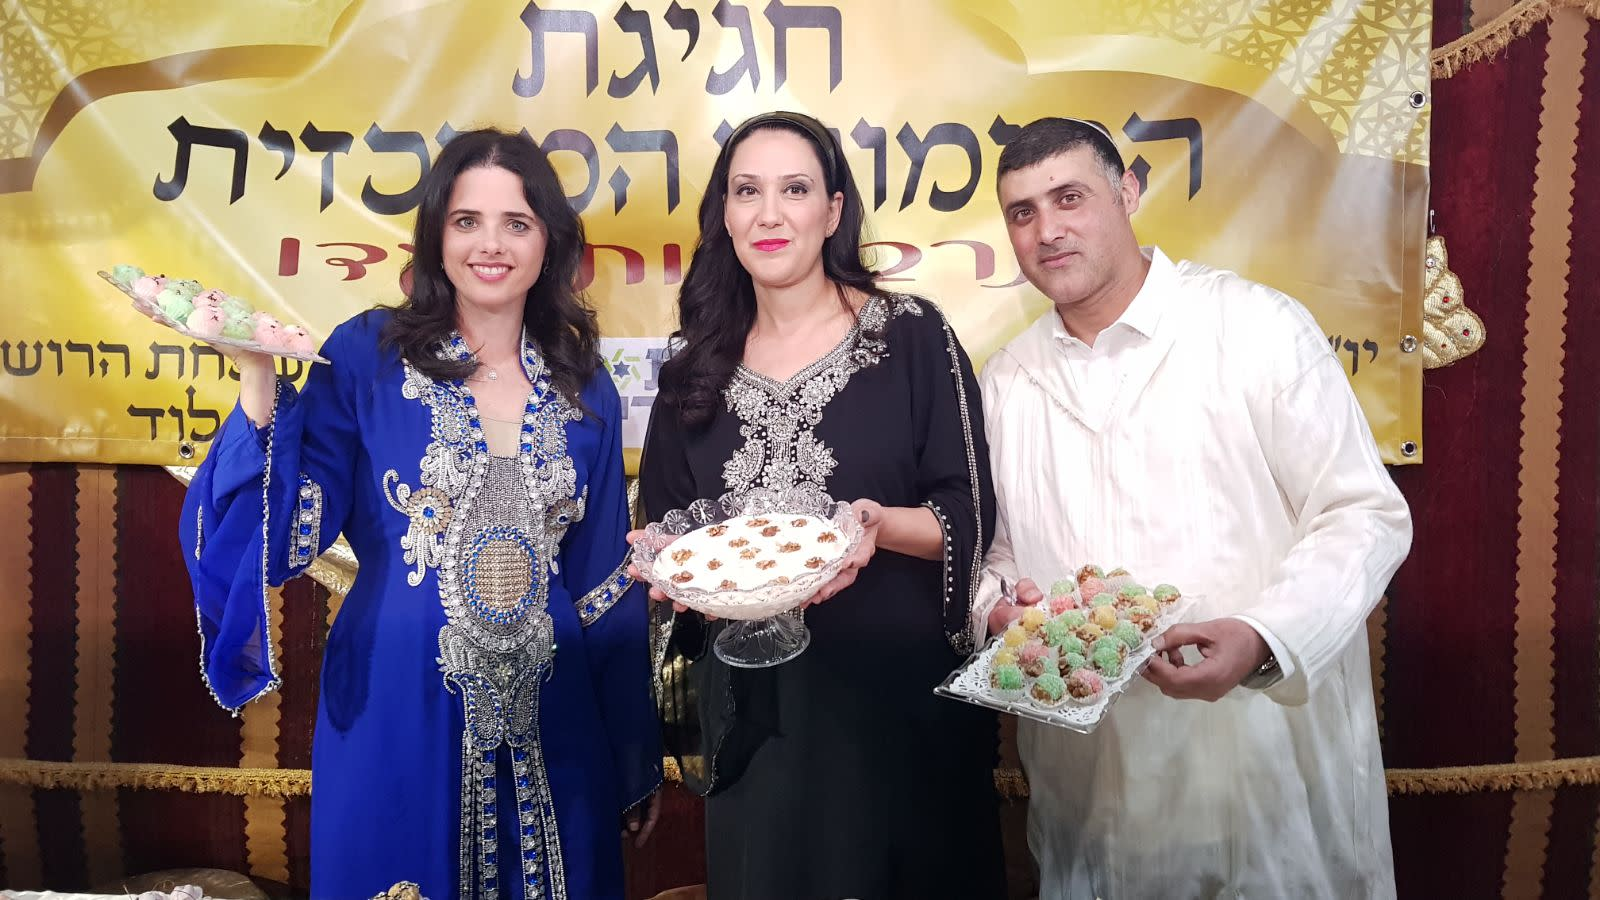 Justice Minister Ayelet Shaked at the Mimouna hosted by the Harosh family in Lod, April 2018 (Courtesy)